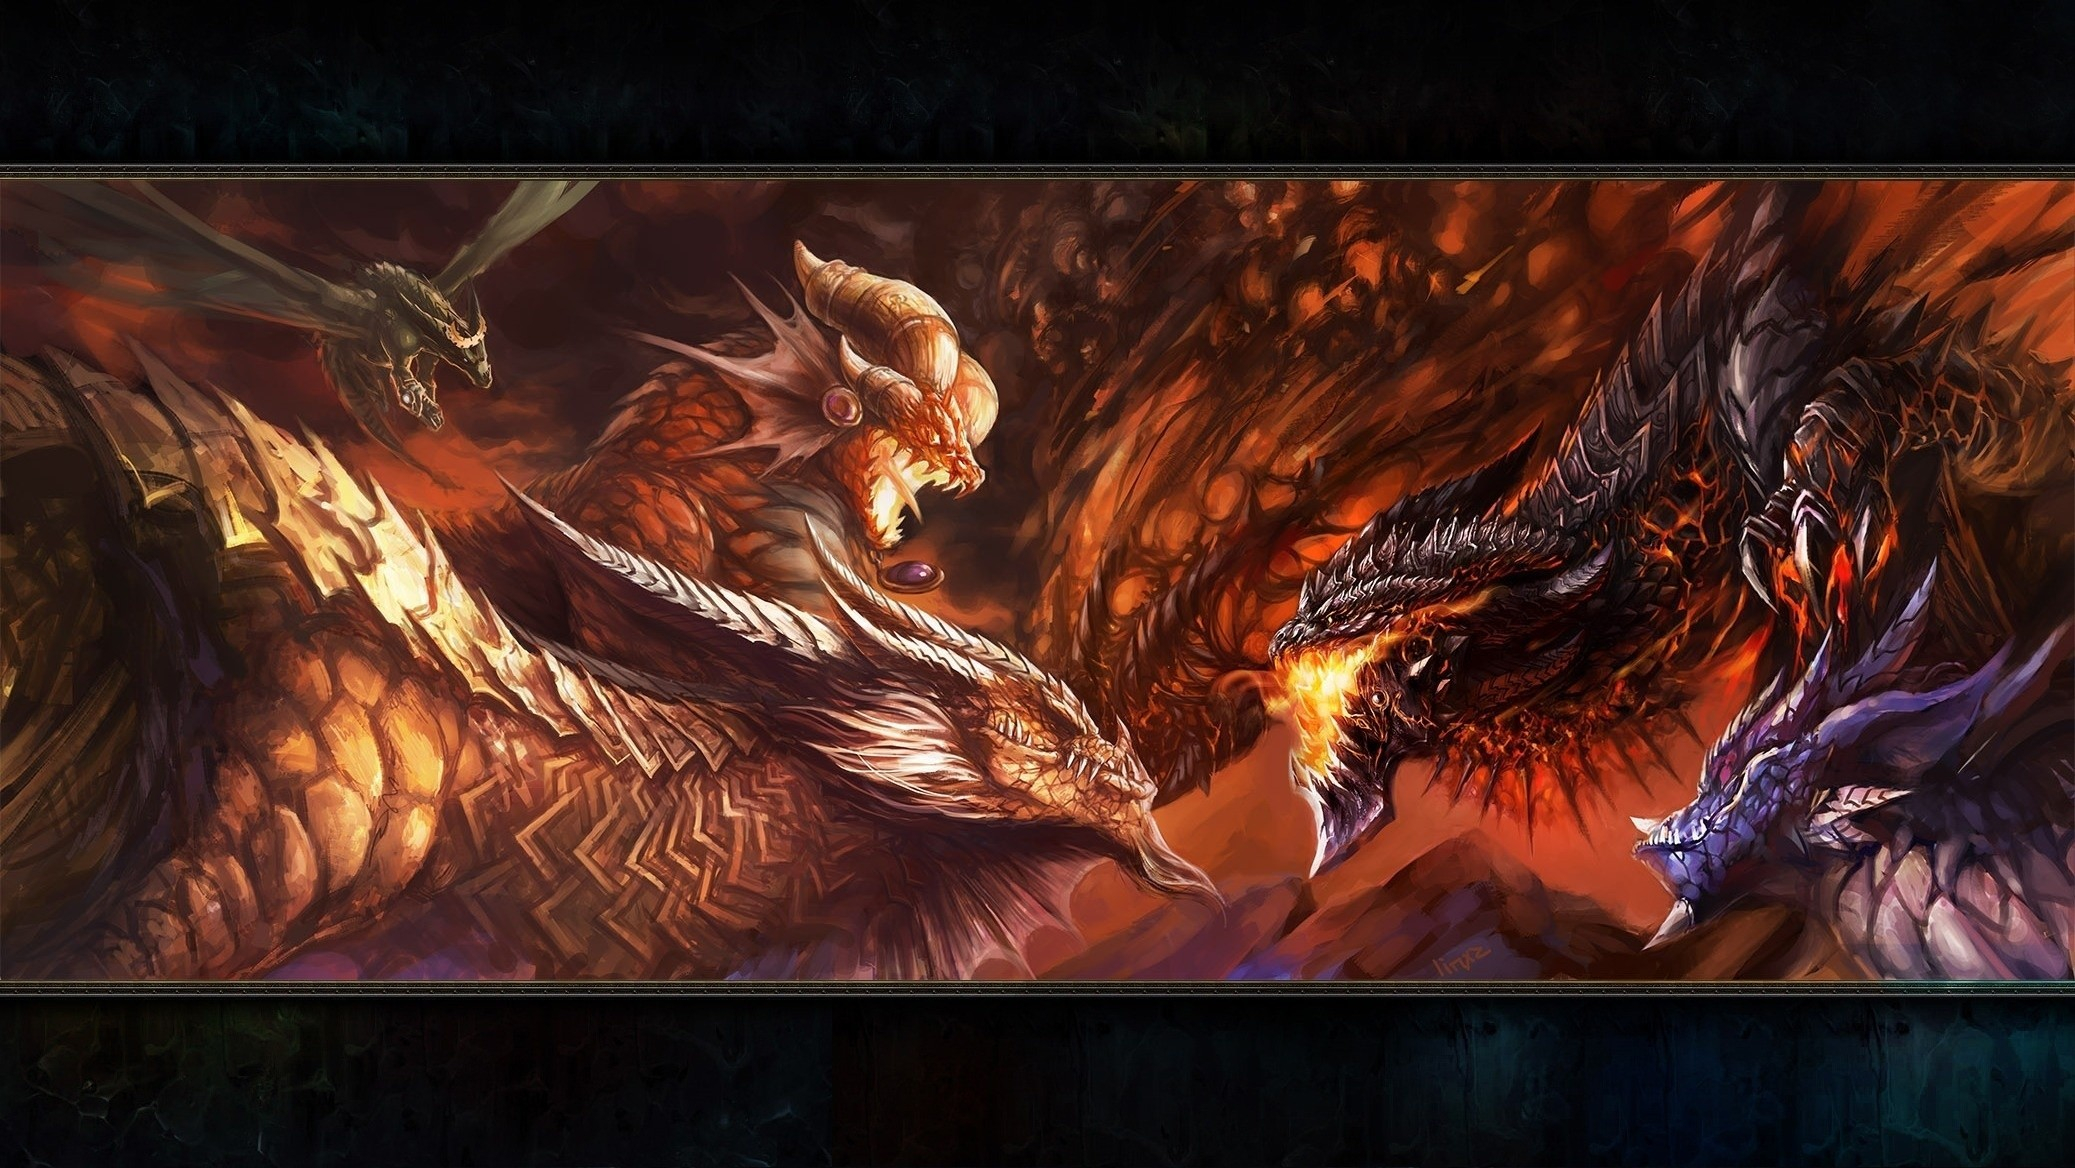 Fantasy World Art Dragon World Of Warcraft Artwork Deathwing Dragons Fantasy Art